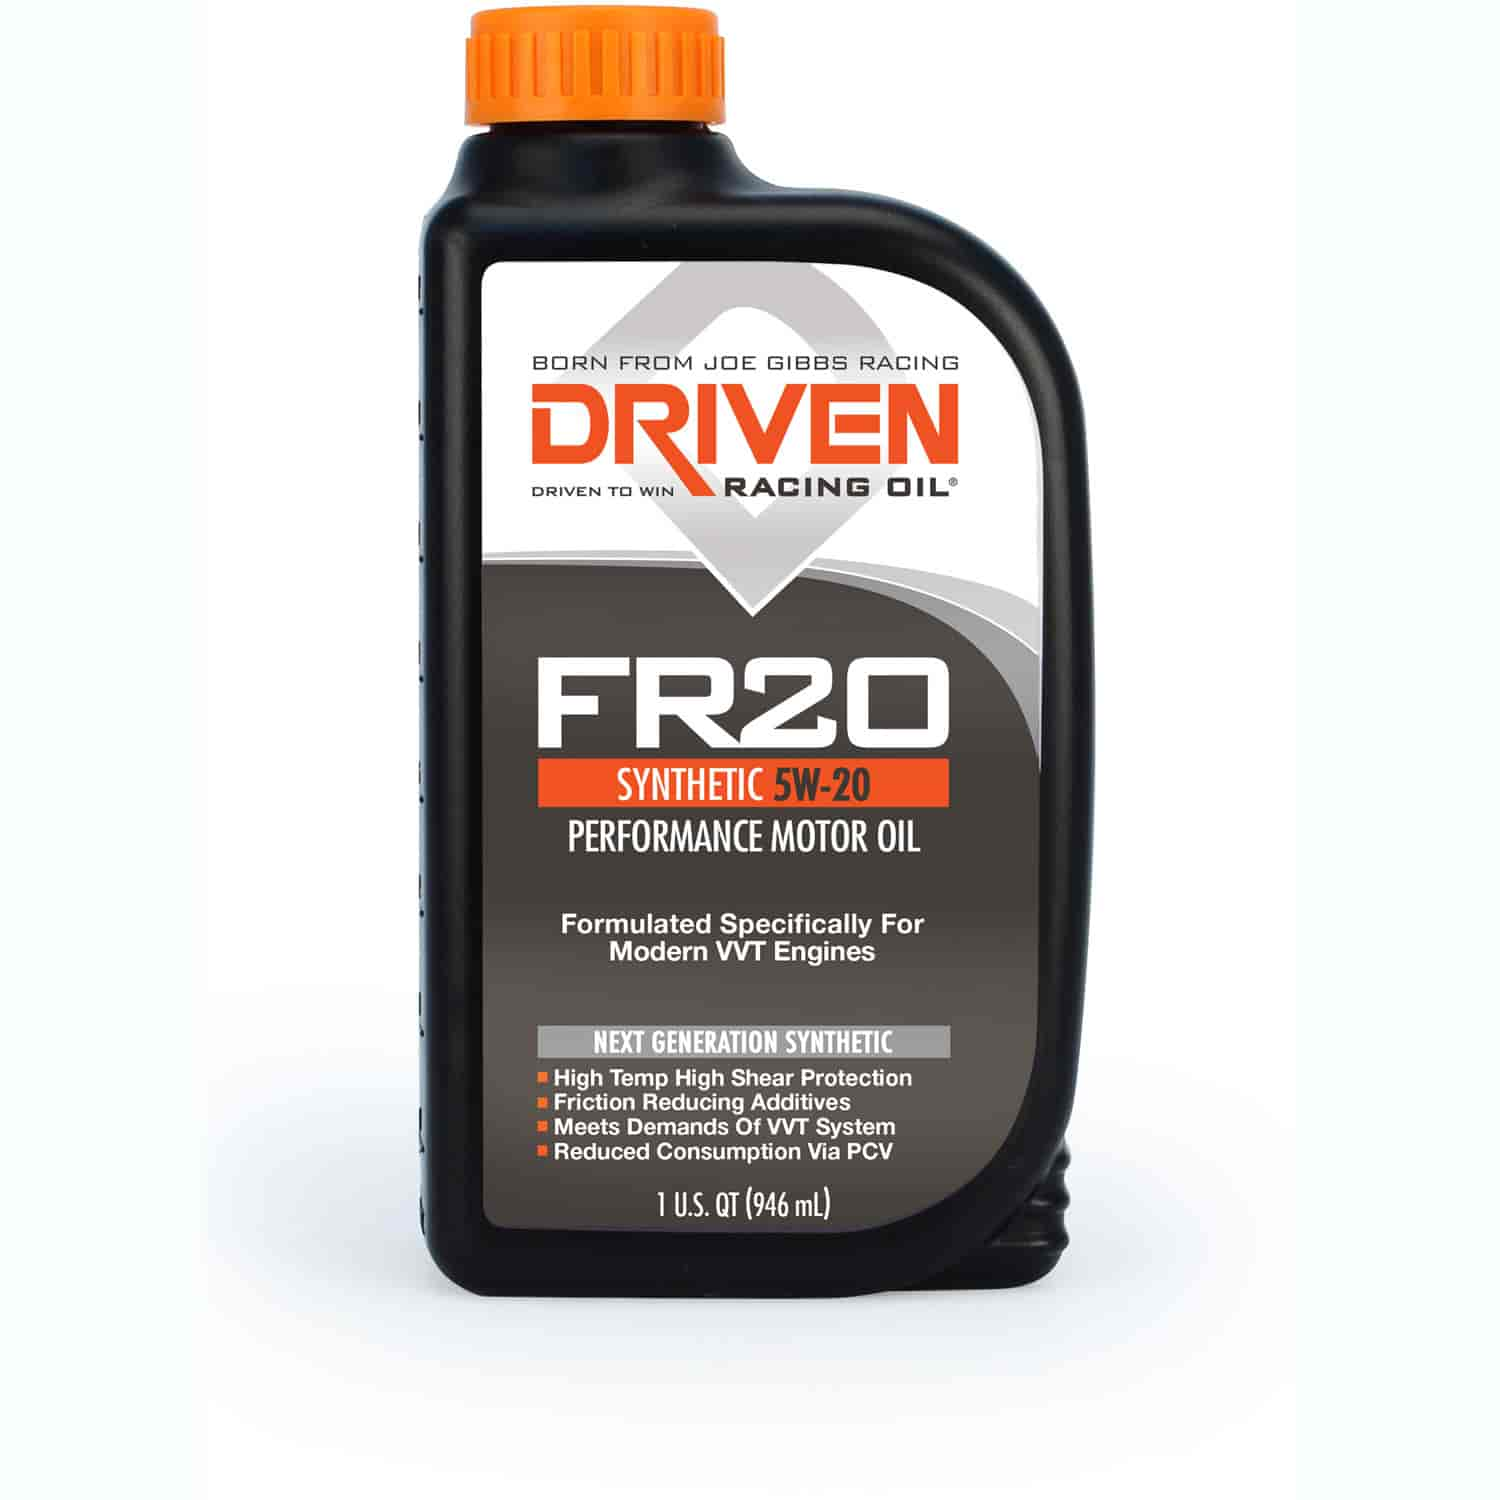 Driven Racing Oil 03006 - Driven Synthetic Performance Motor Oil